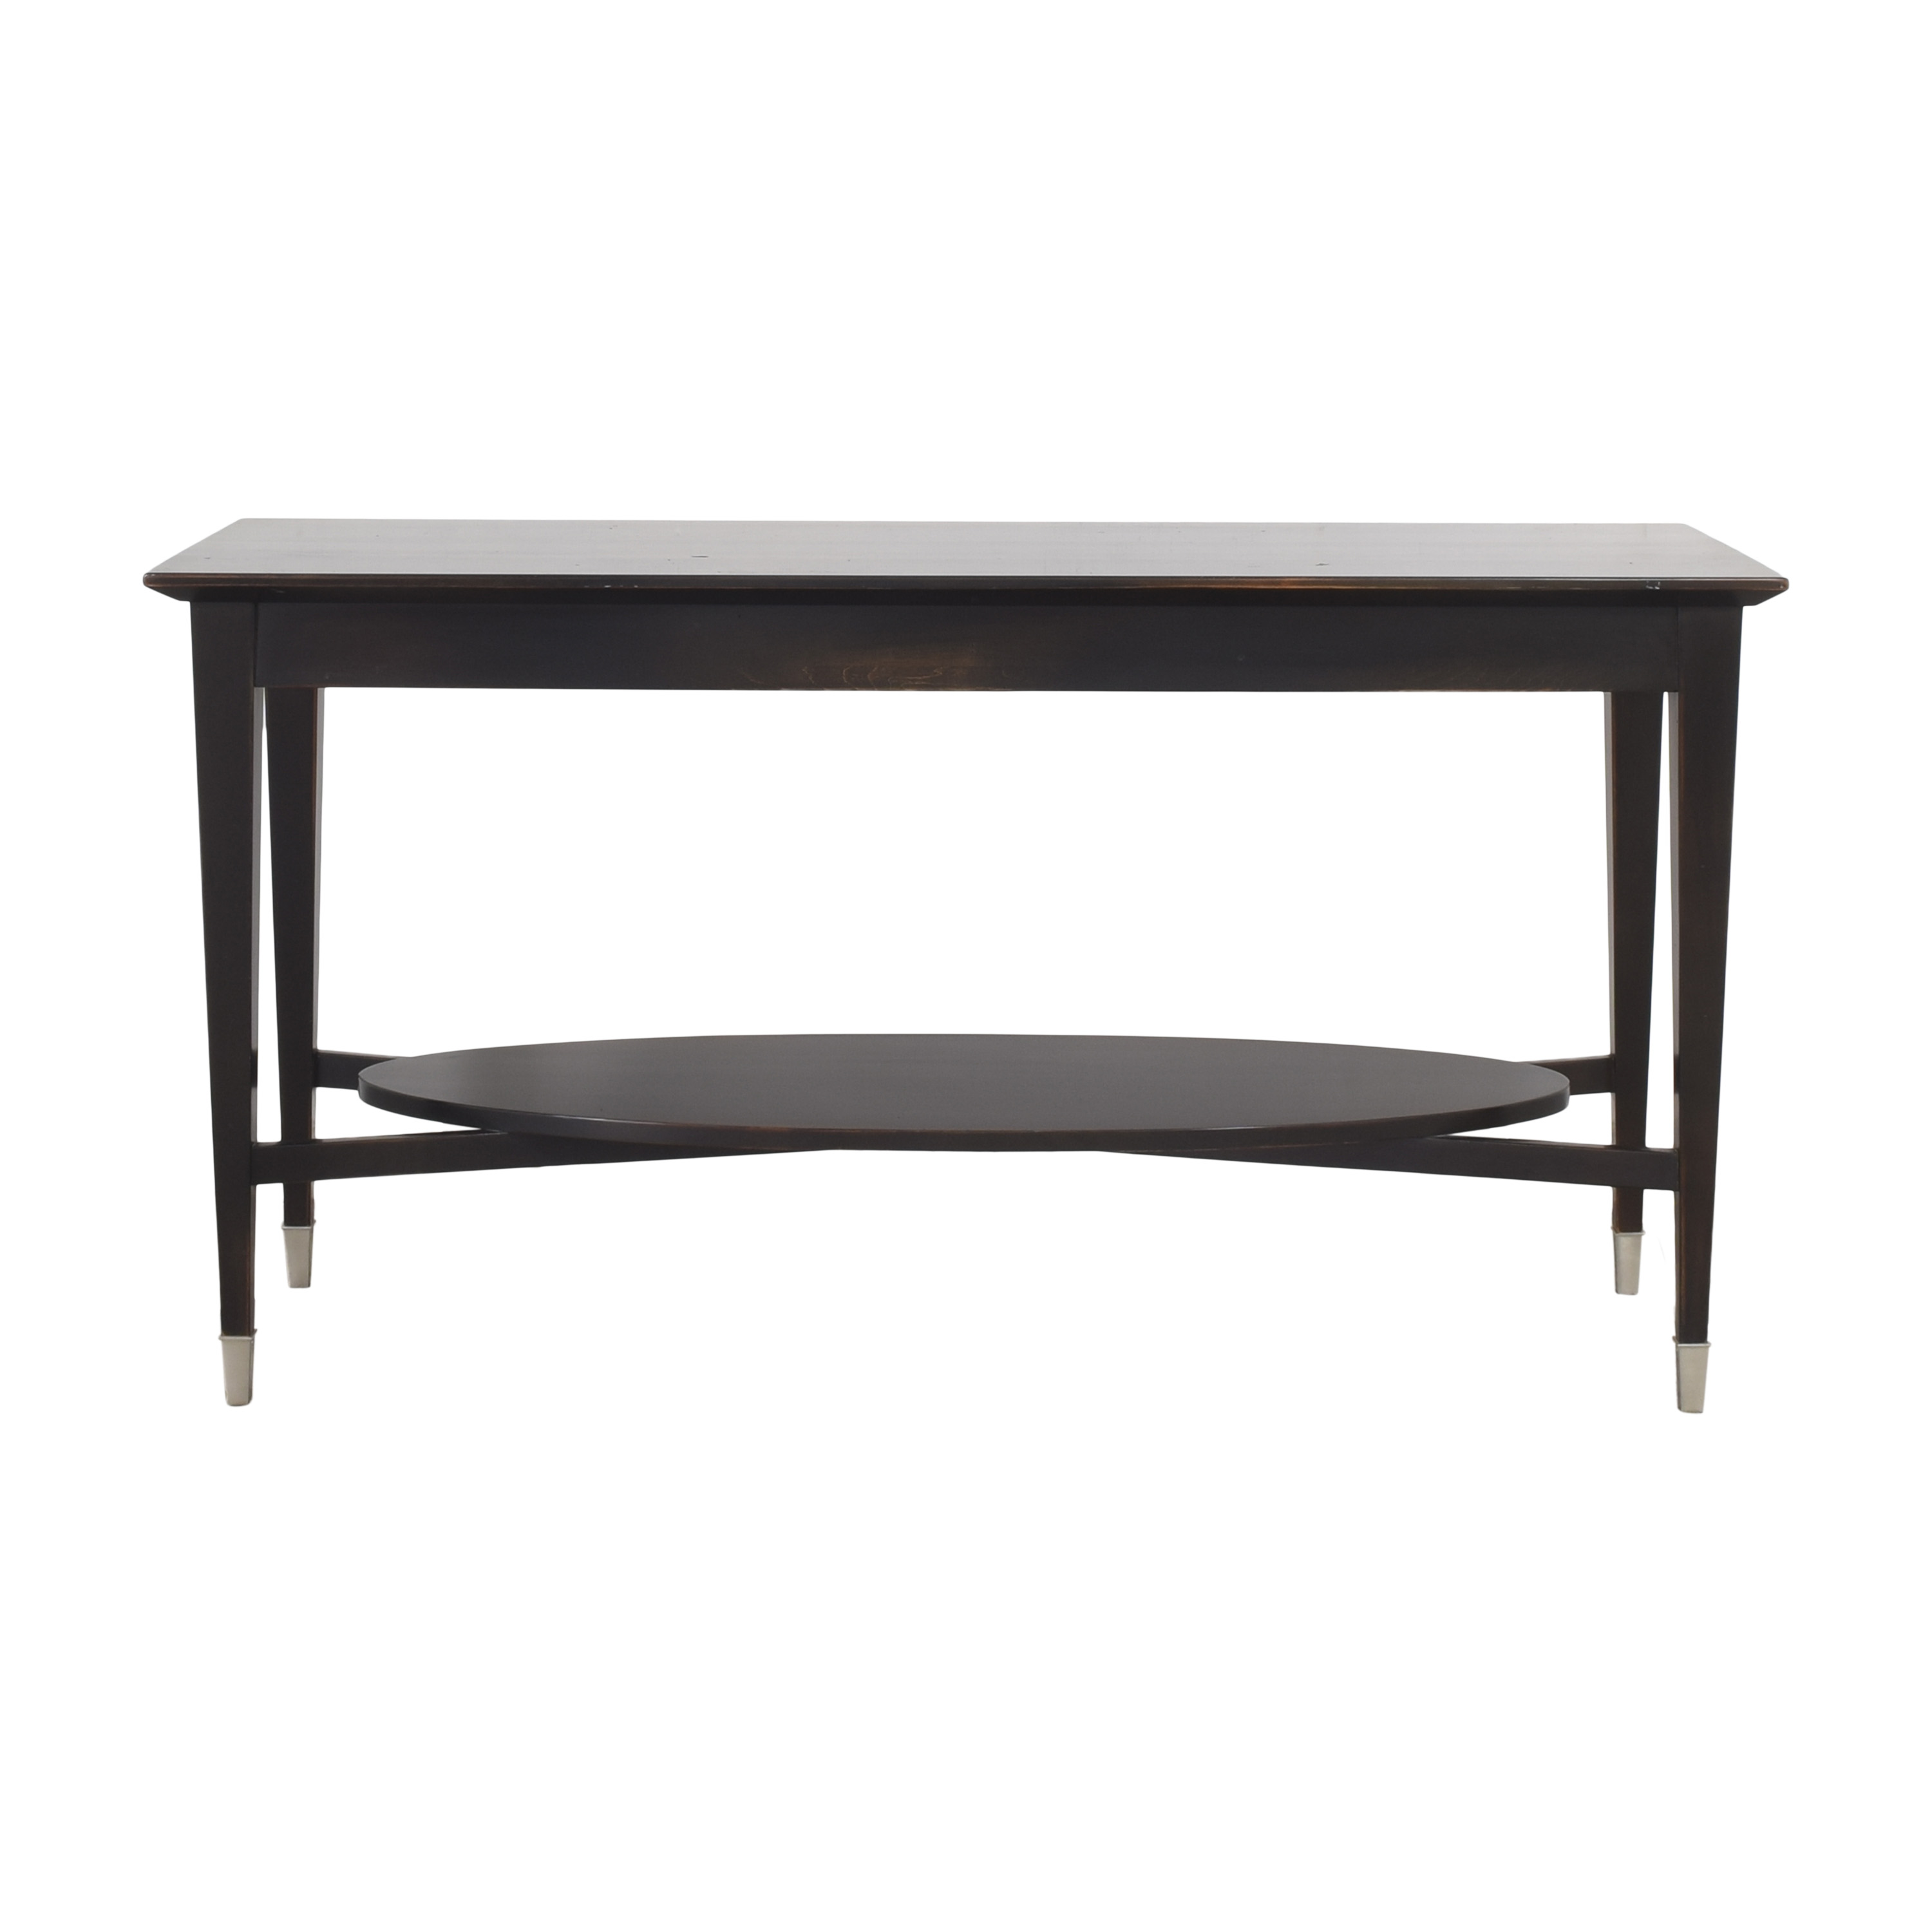 Lillian August Lillian August Console Table price